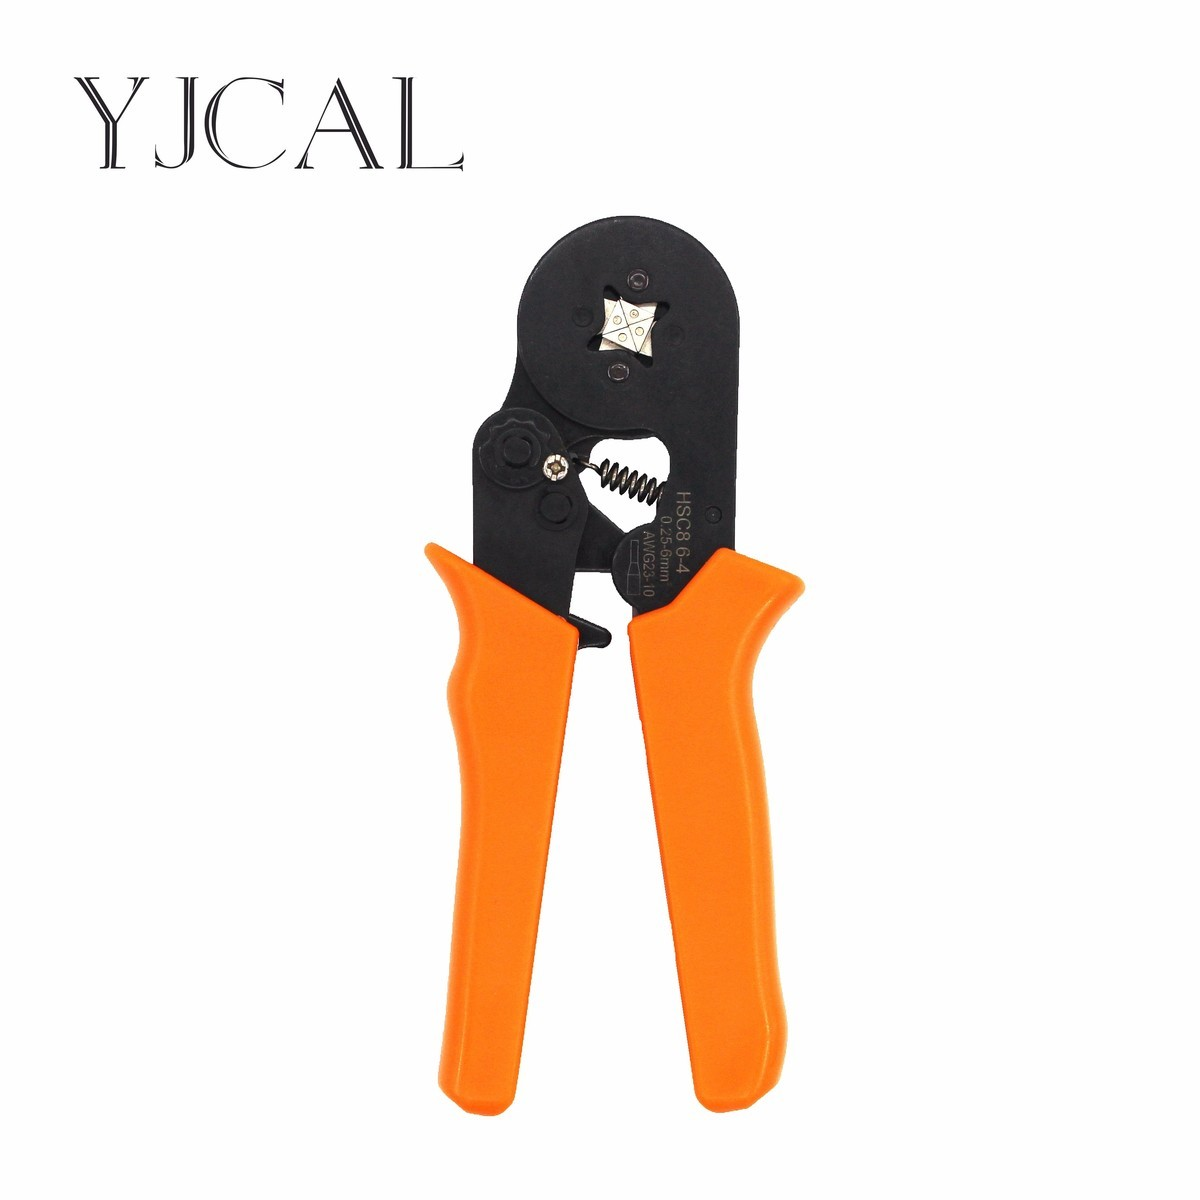 Portable Self-adjusting Crimping Press Plier HSC8 6-4 Wire Ferrule Crimp Tool Cable End Ferrules Terminal Tube Multi Hand Tool goorin brothers 103 5880